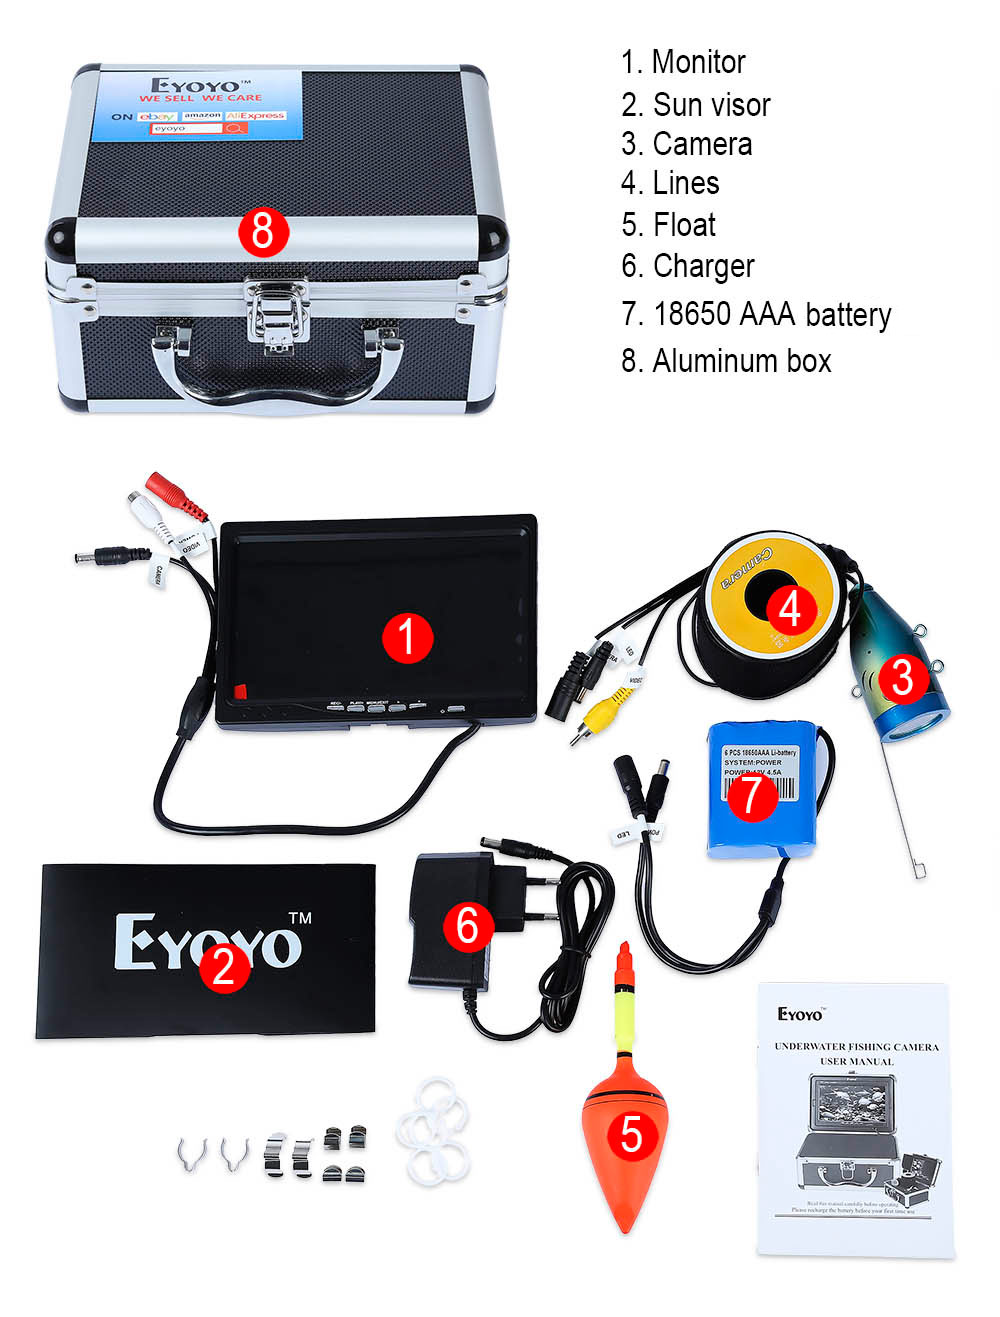 Eyoyo 15M 1000TVL Underwater Fishing Finder Camera Monitor with Sun Visor Infrared IR LED